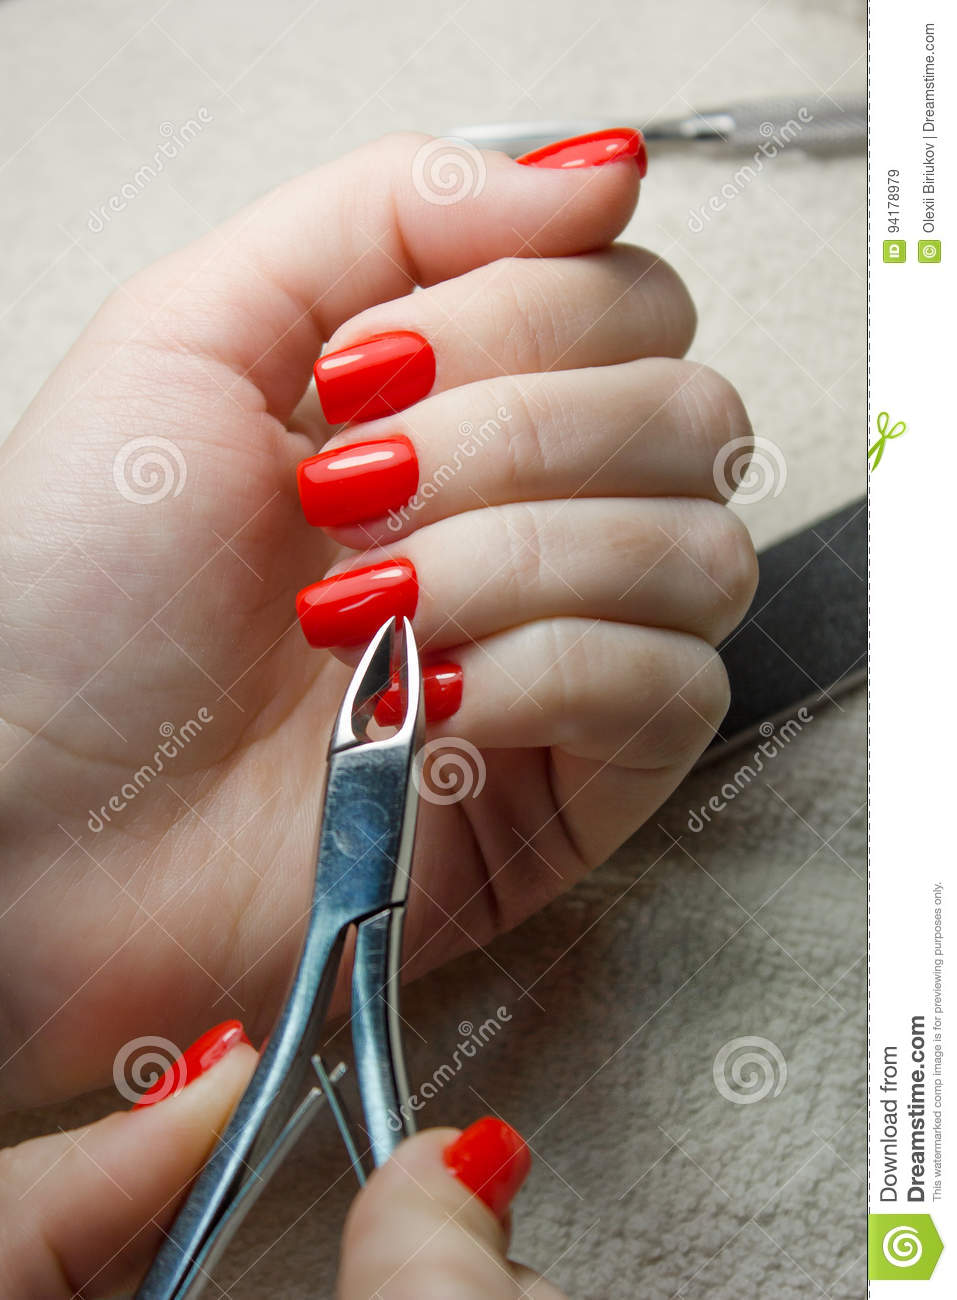 Beauty Salon, Manicure Applying, Cutting The Cuticle With Scissors ...